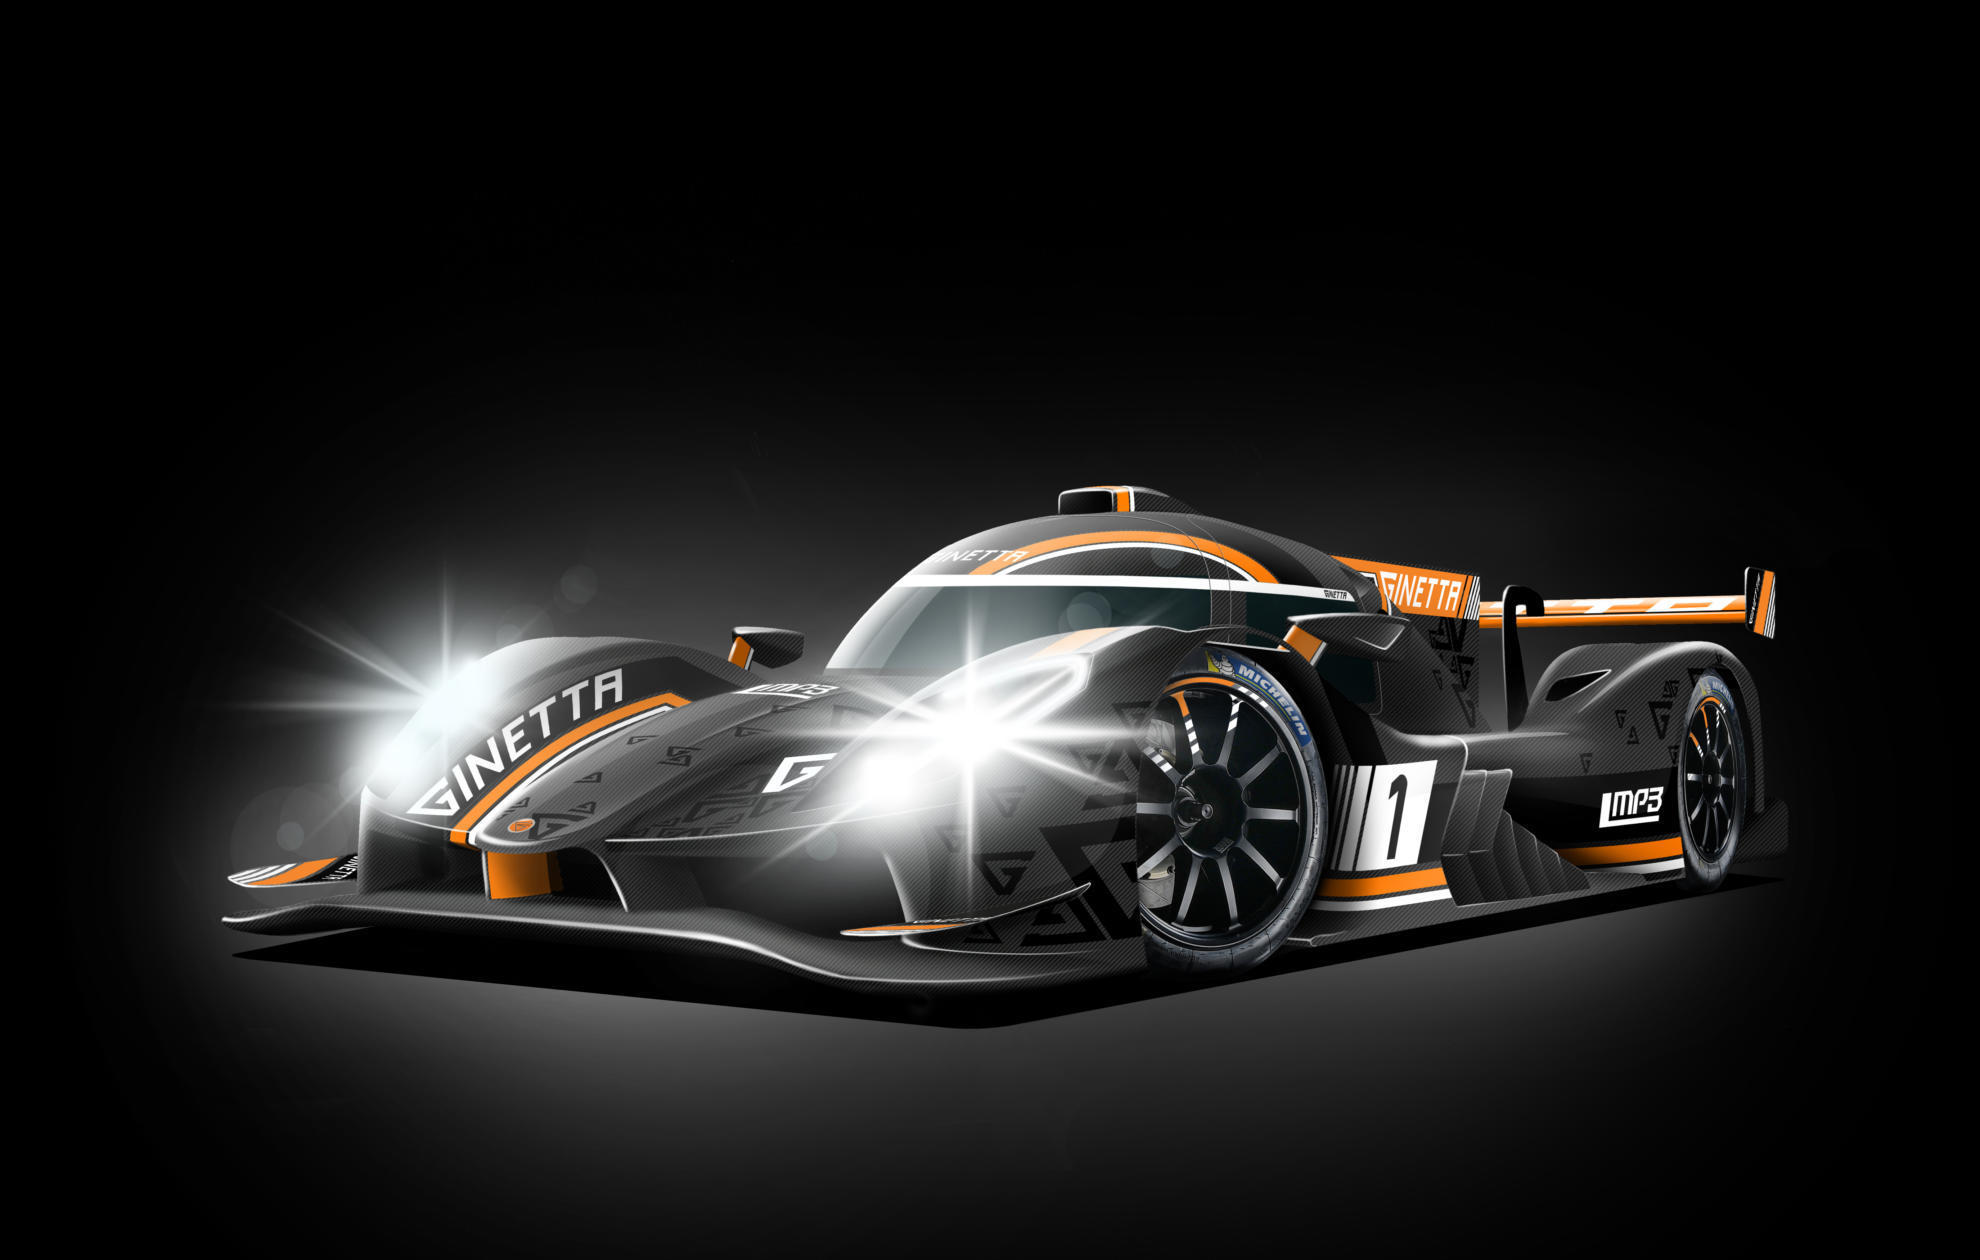 Ginetta Launch New-for-2020 G61-LT-P3